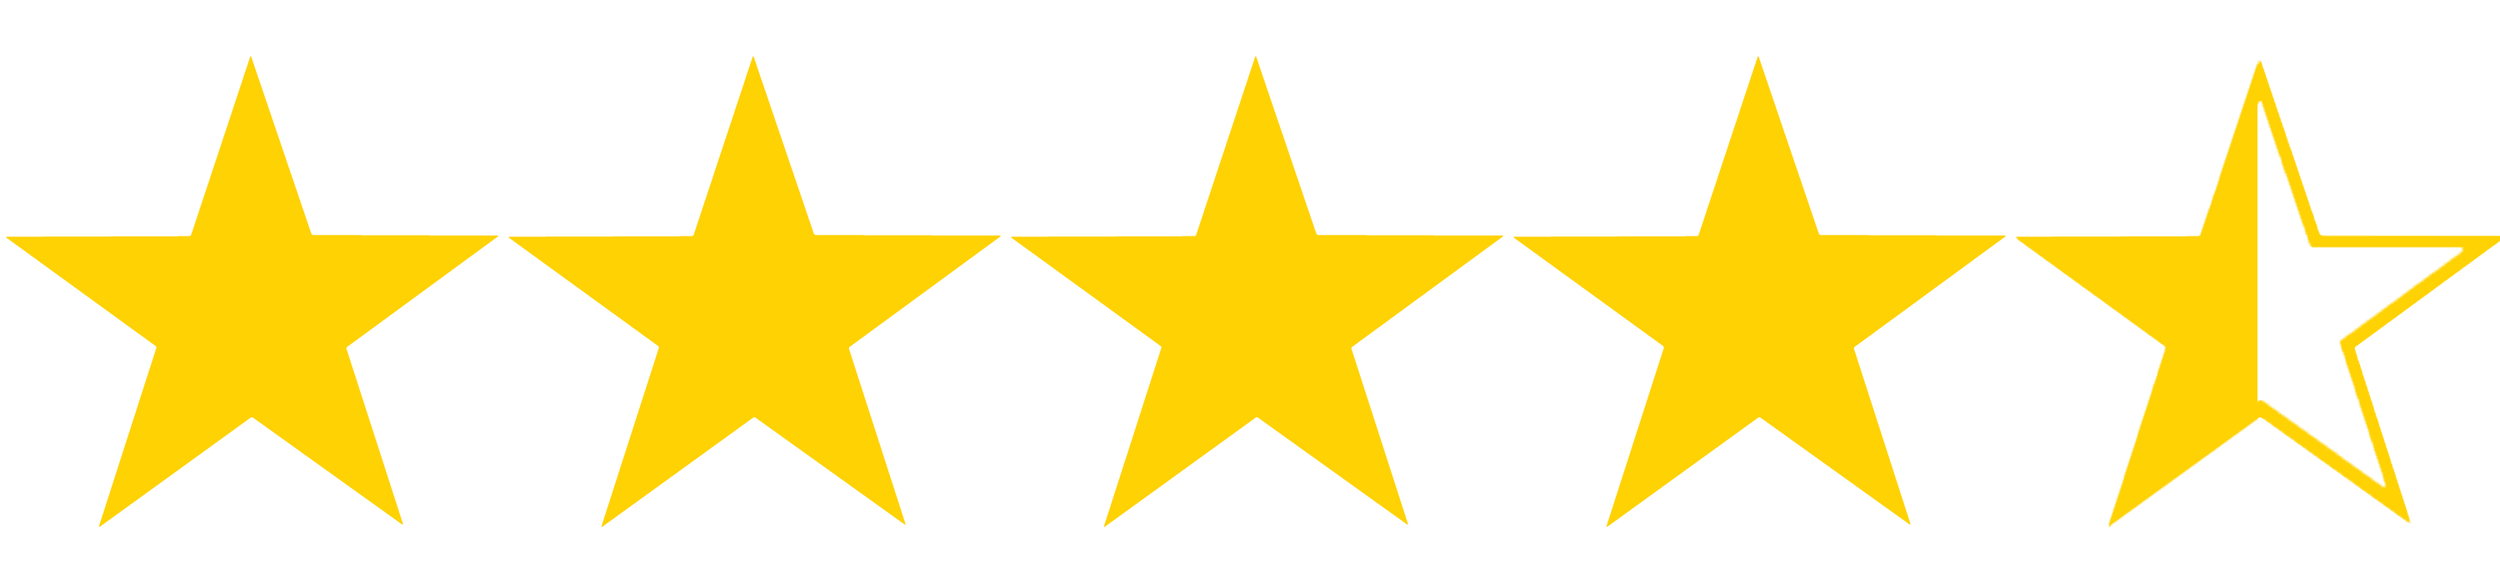 four_half-stars_1.png